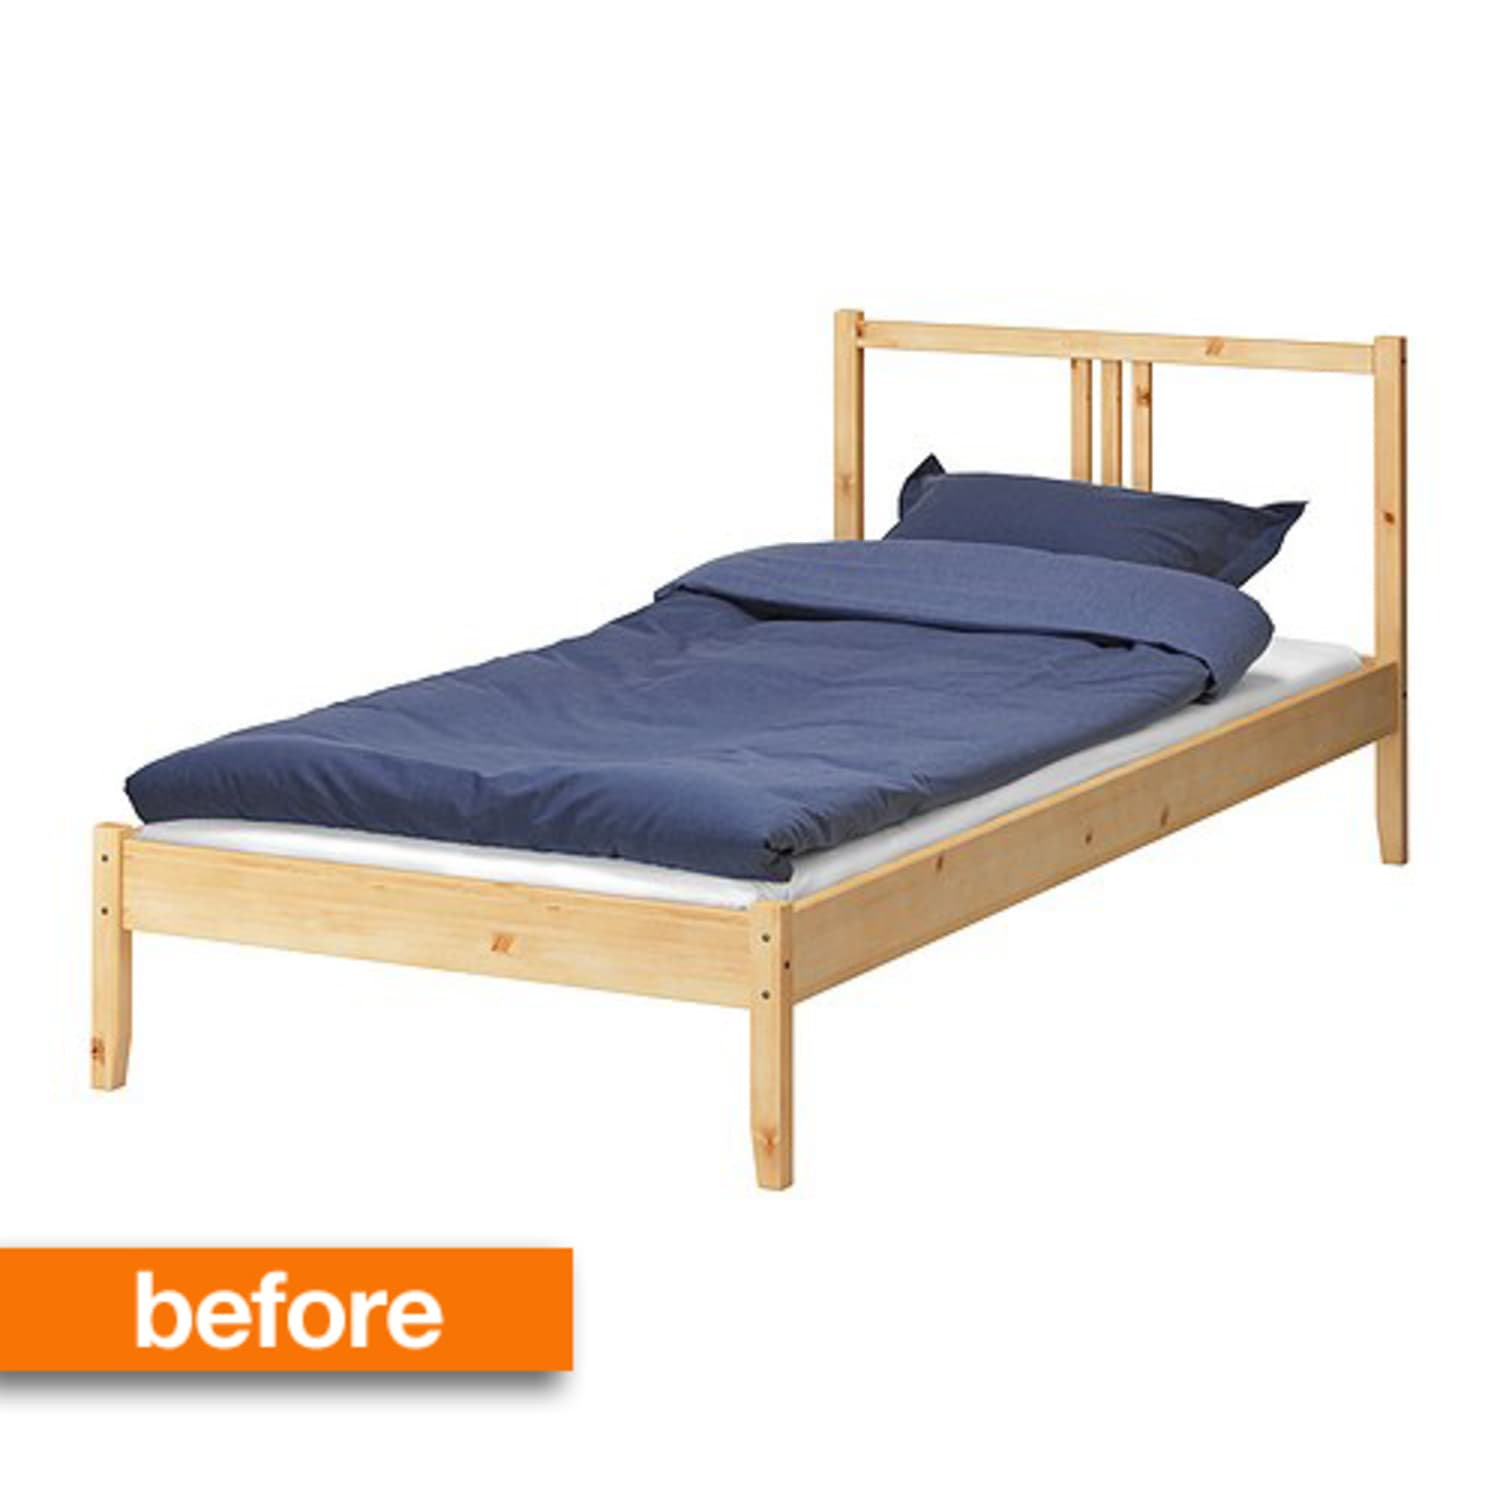 Before After Simple Ikea Wooden Bed Frame Gets A Luxe Upholstered Look Apartment Therapy